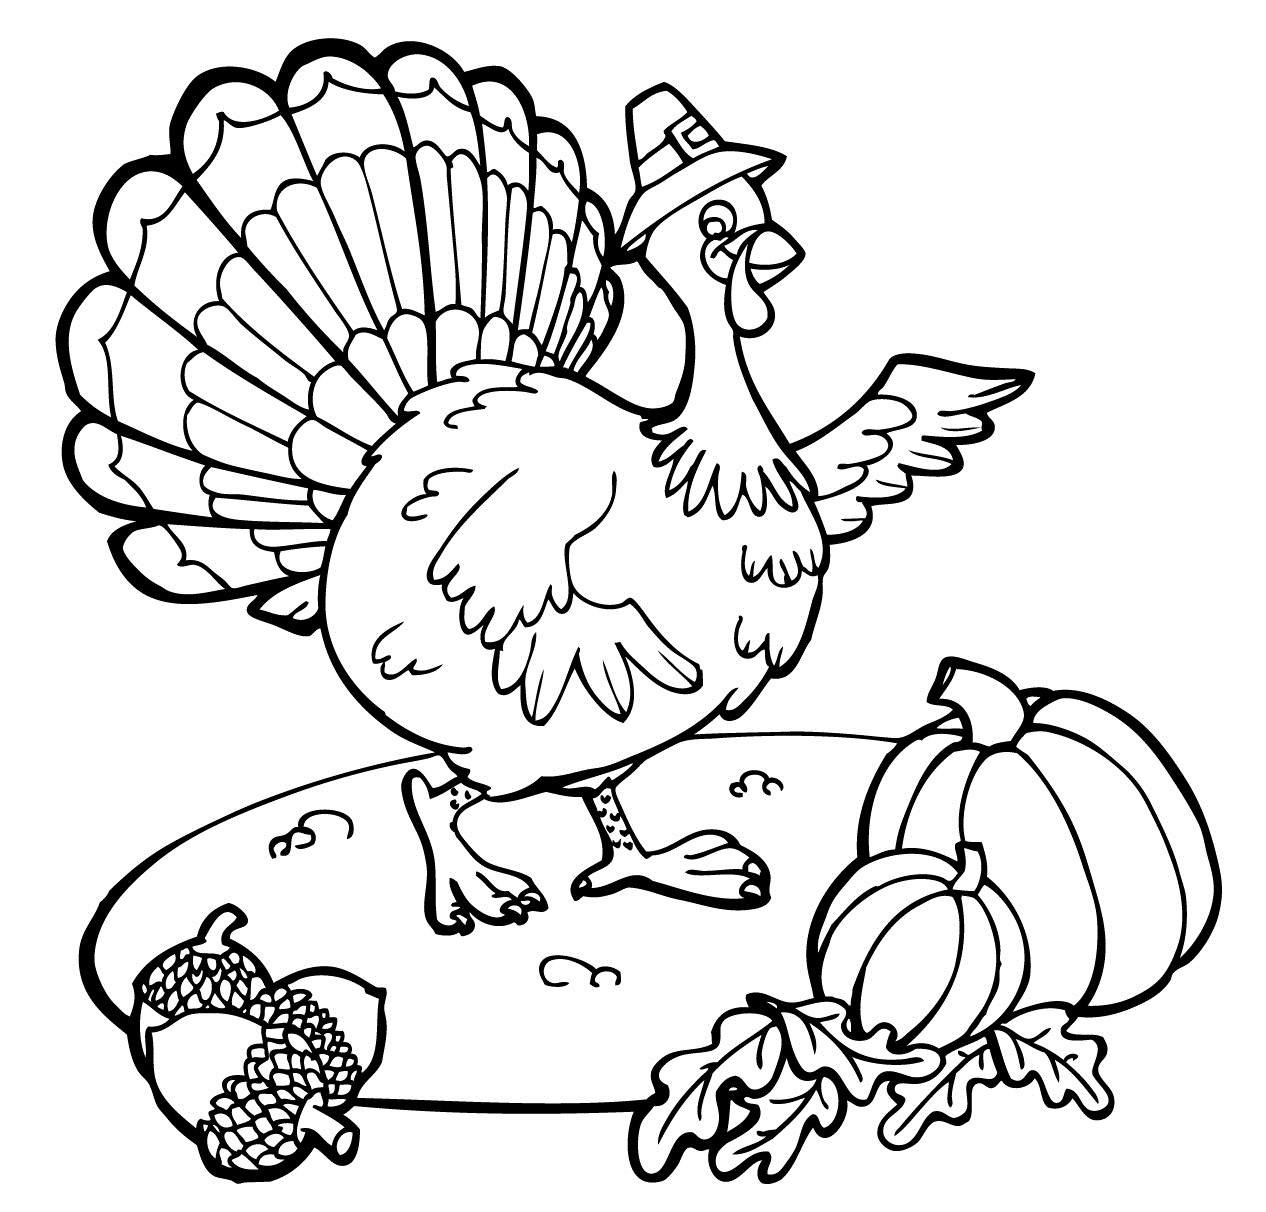 kids thanksgiving coloring pages - Thanksgiving Coloring Worksheets